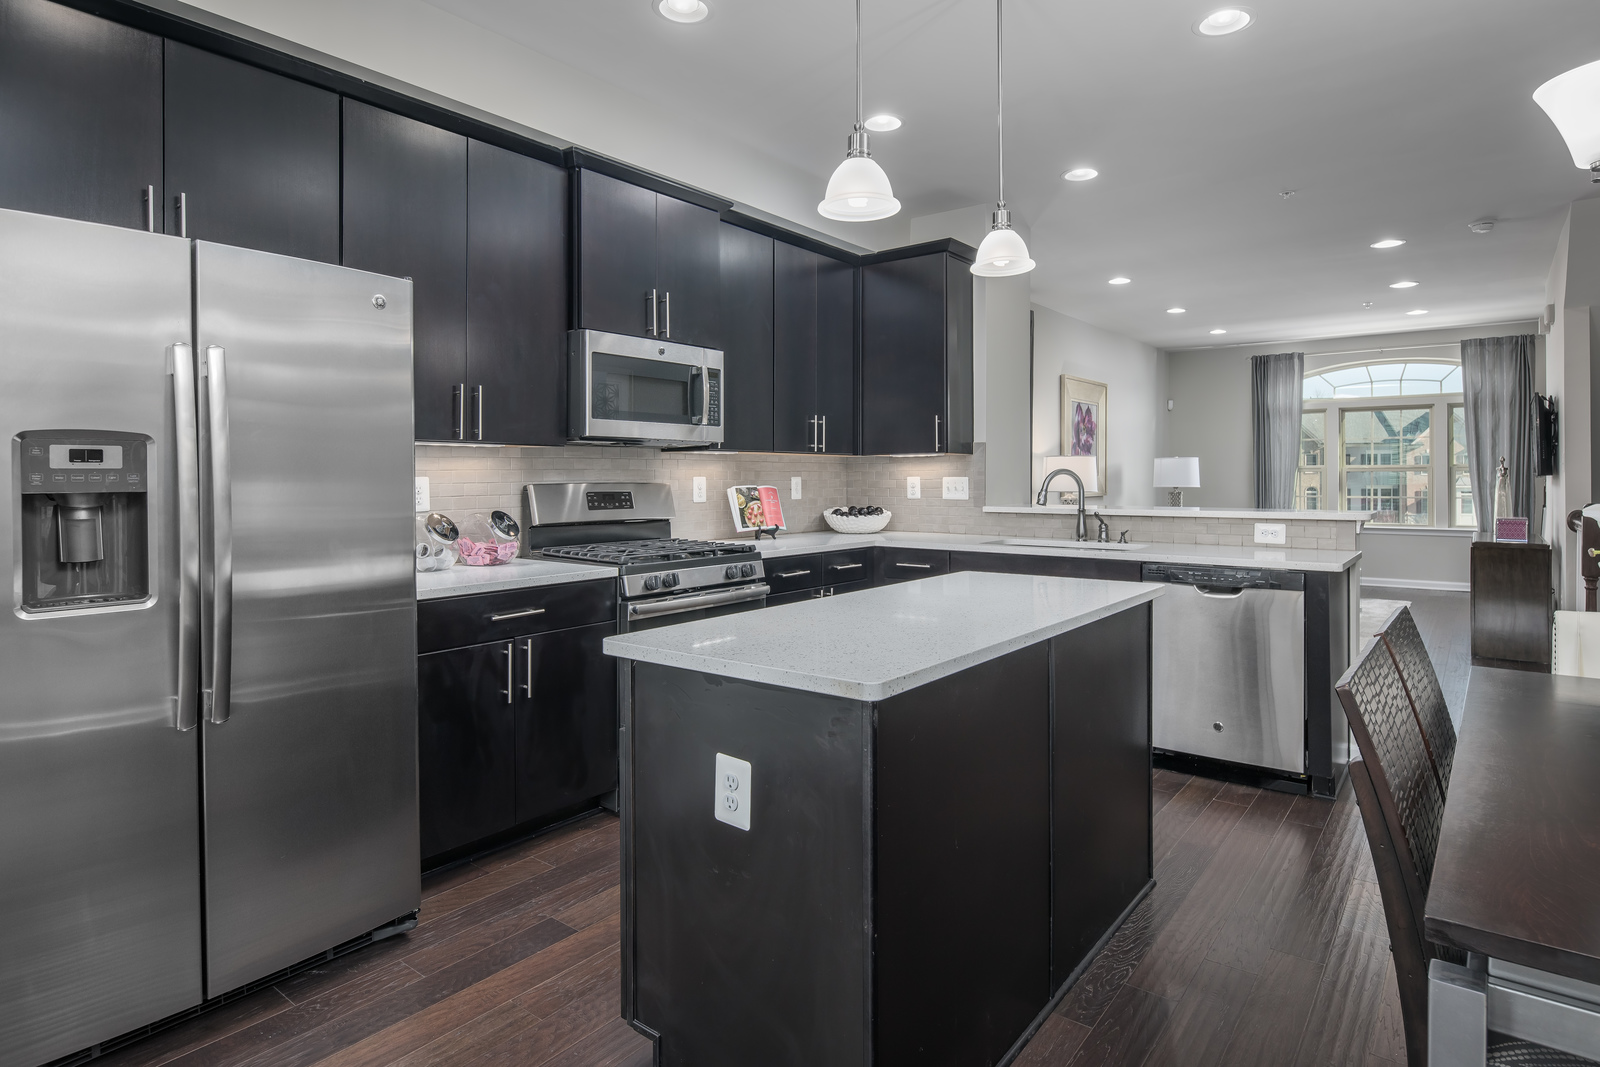 New homes for sale at parkside garage townhomes in hanover md new homes for sale at parkside garage townhomes in hanover md within the anne arundel county school district solutioingenieria Gallery